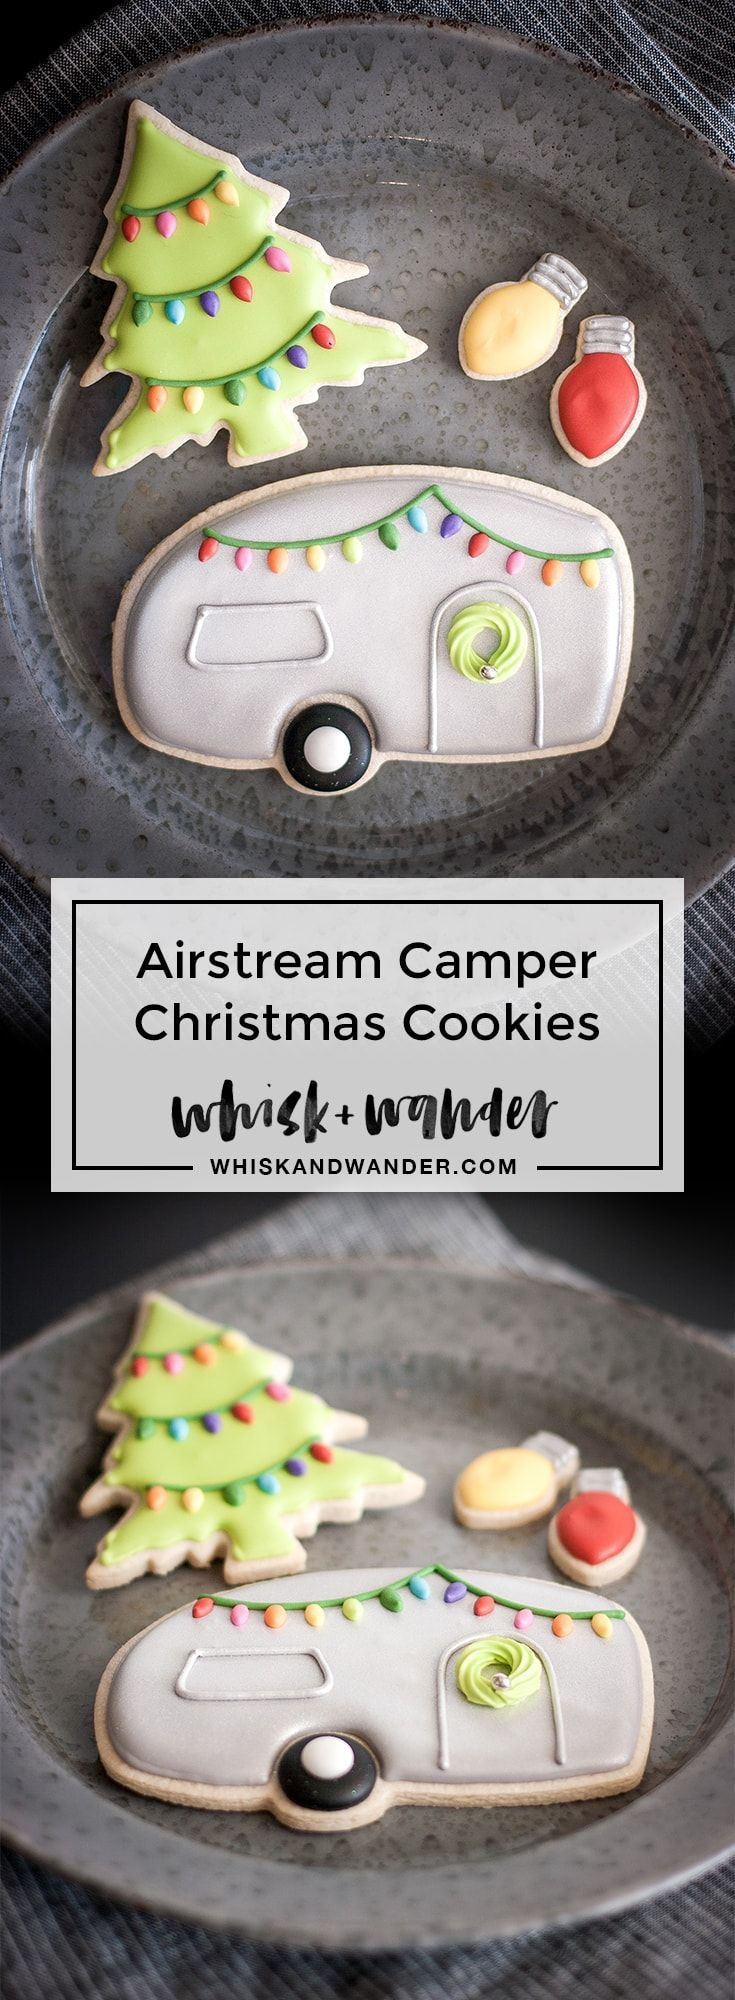 Airstream camper Christmas cookies decorated with vintage style Christmas lights and a royal icing wreath. Retro Christmas tree light bulbs, too! via @whiskwander